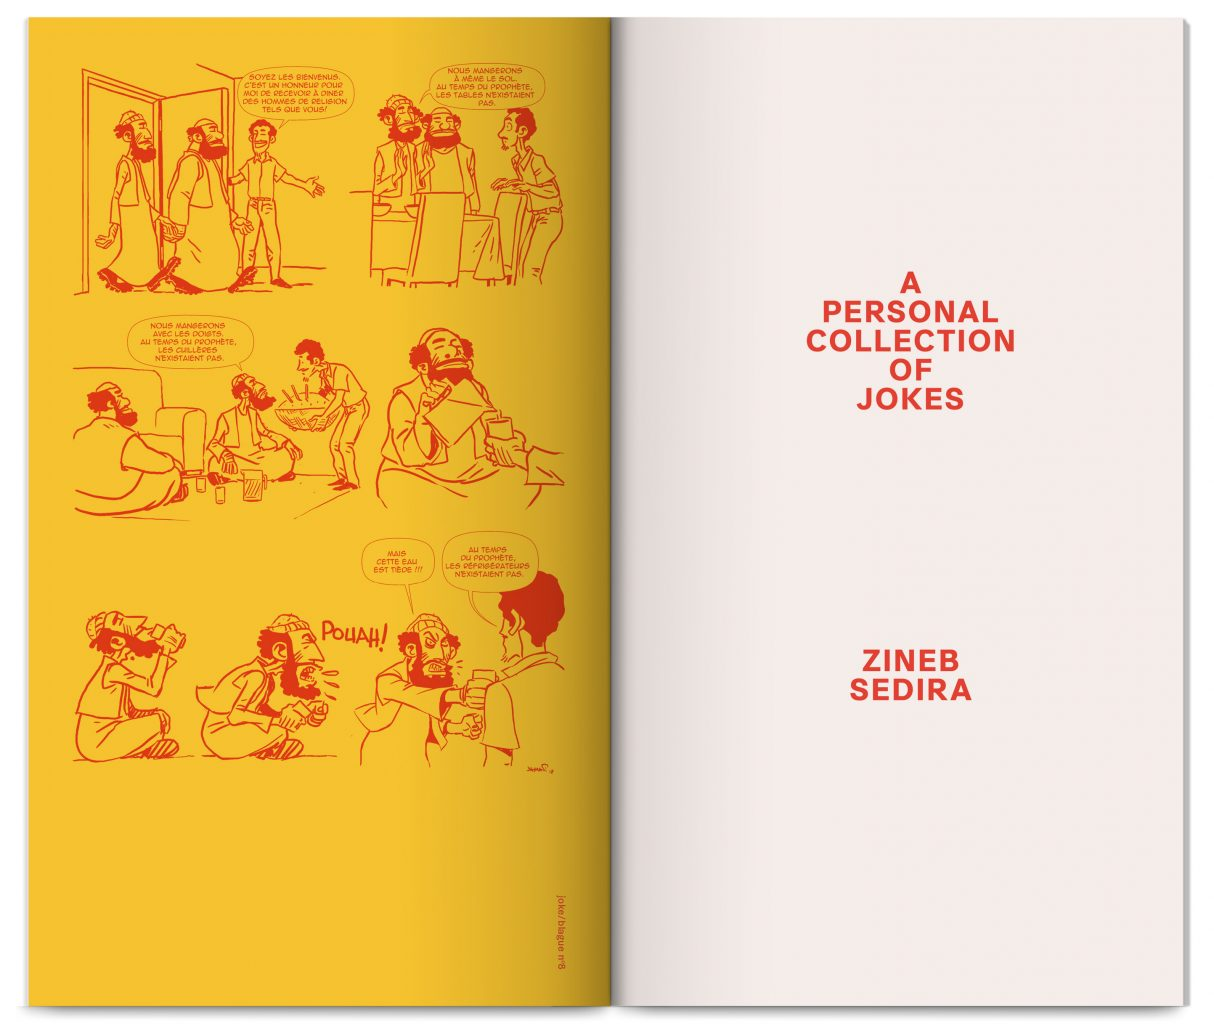 A Personal Collection of Jokes, artist book by Zineb Sedira, trilingual Algerian arabic, English, French, design by In the shade of a tree studio, founded by Sophie Demay and Maël Fournier Comte.